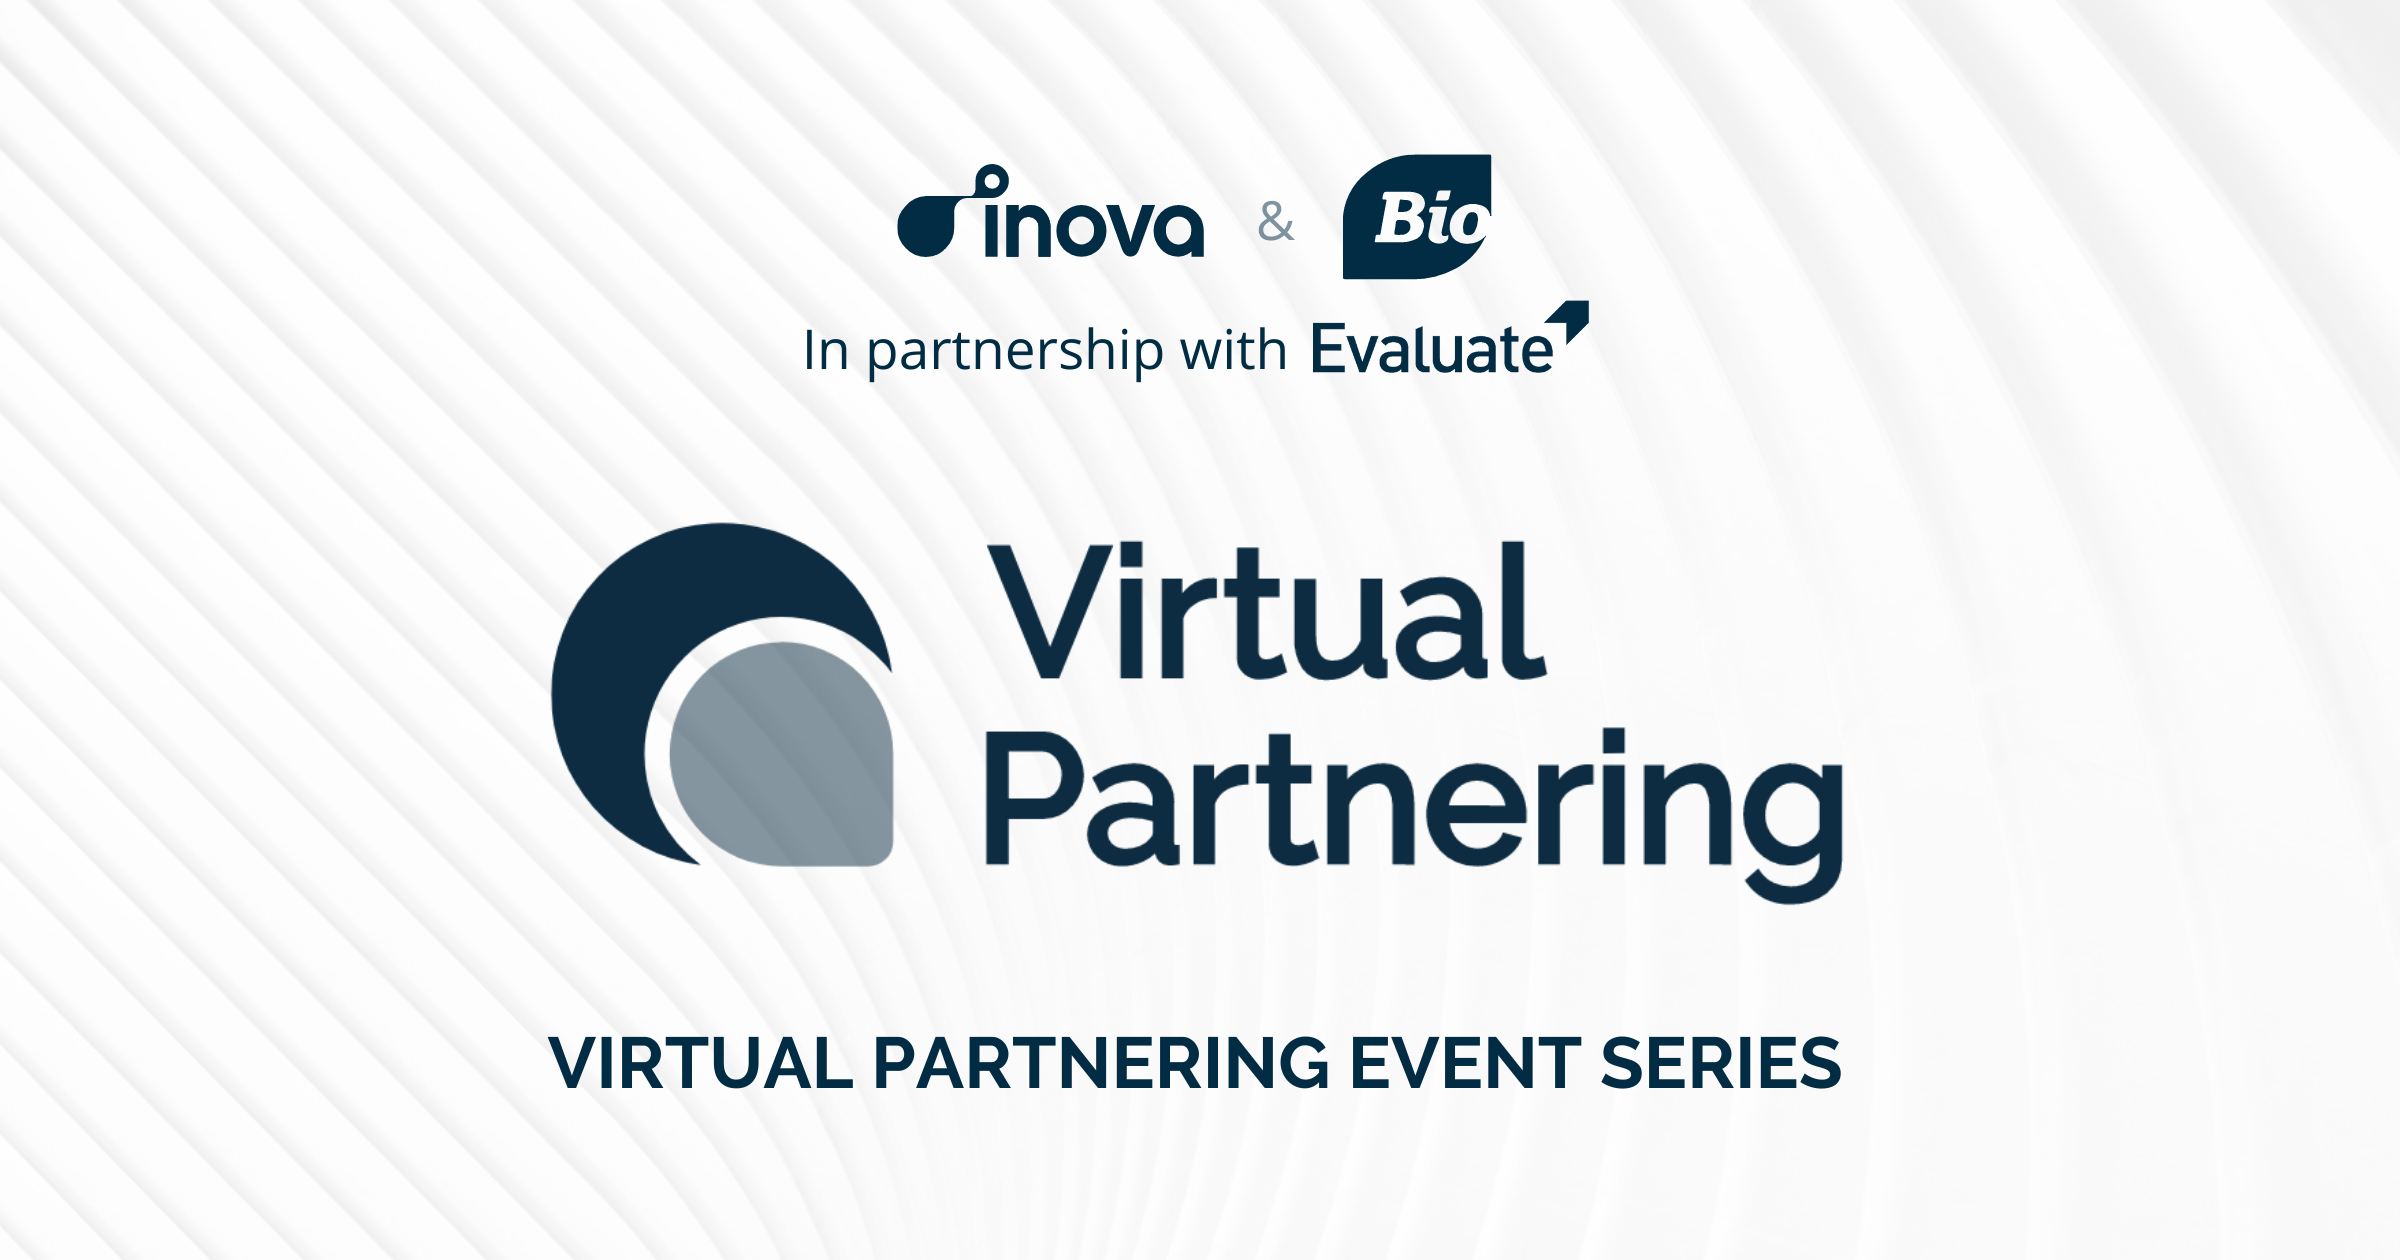 Inova and BIO, in partnership with Evaluate, announce a new series of therapeutic-specific Virtual Partnering events for 2021